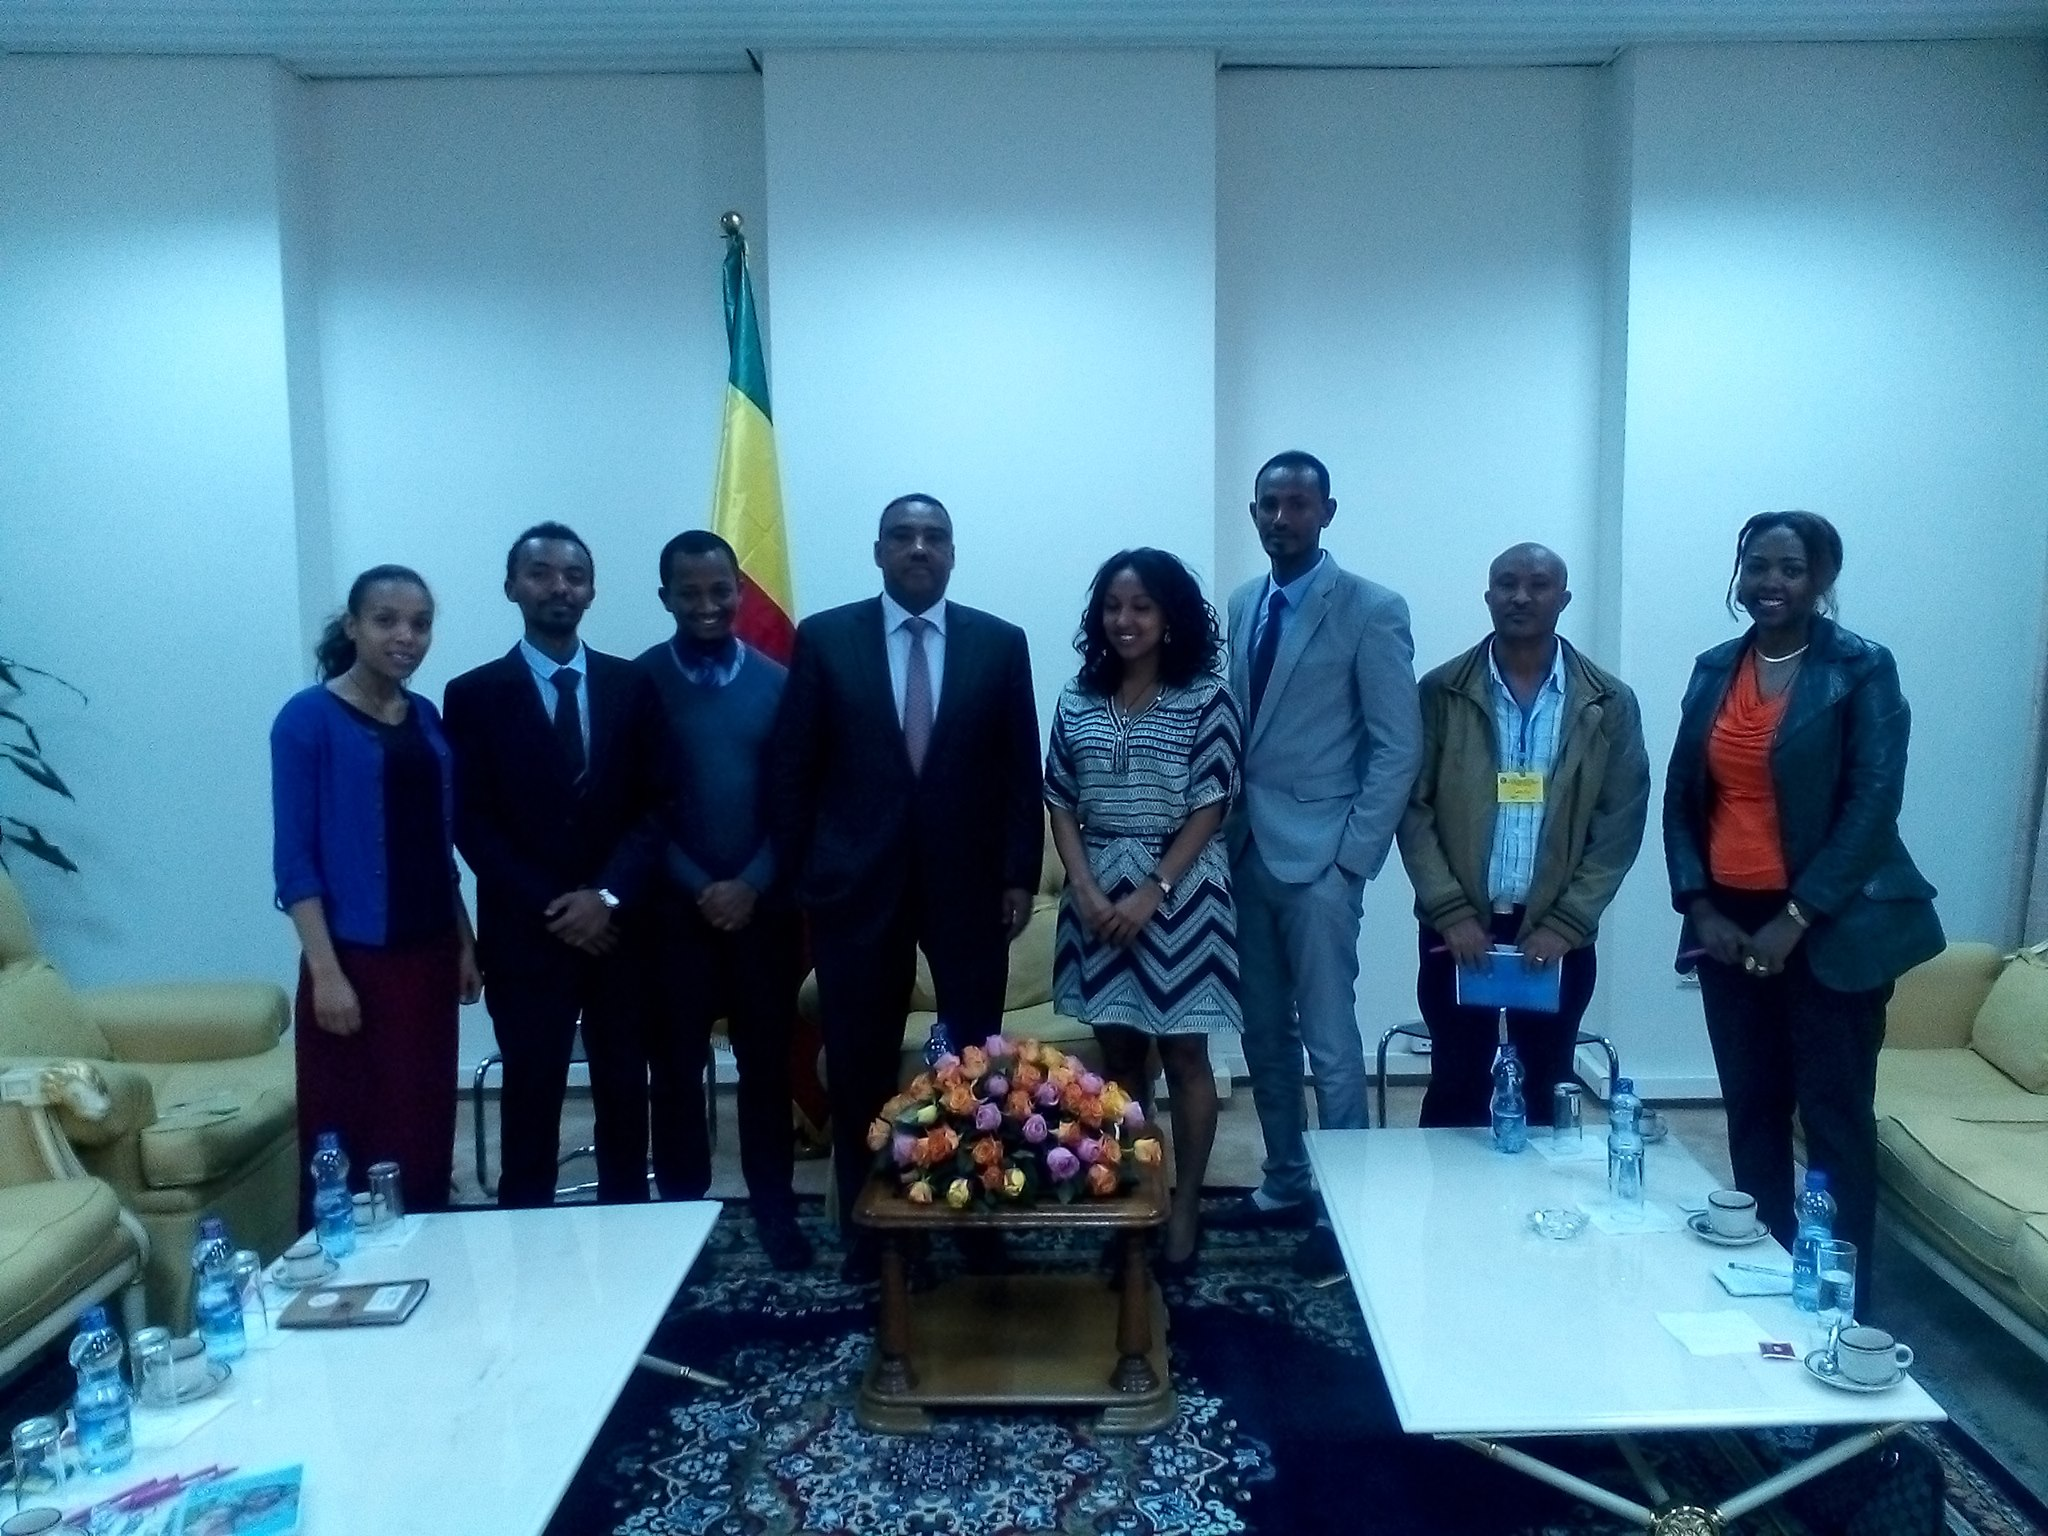 Youth For Change Ethiopia team meeting with Ethiopia's Deputy Prime Minister